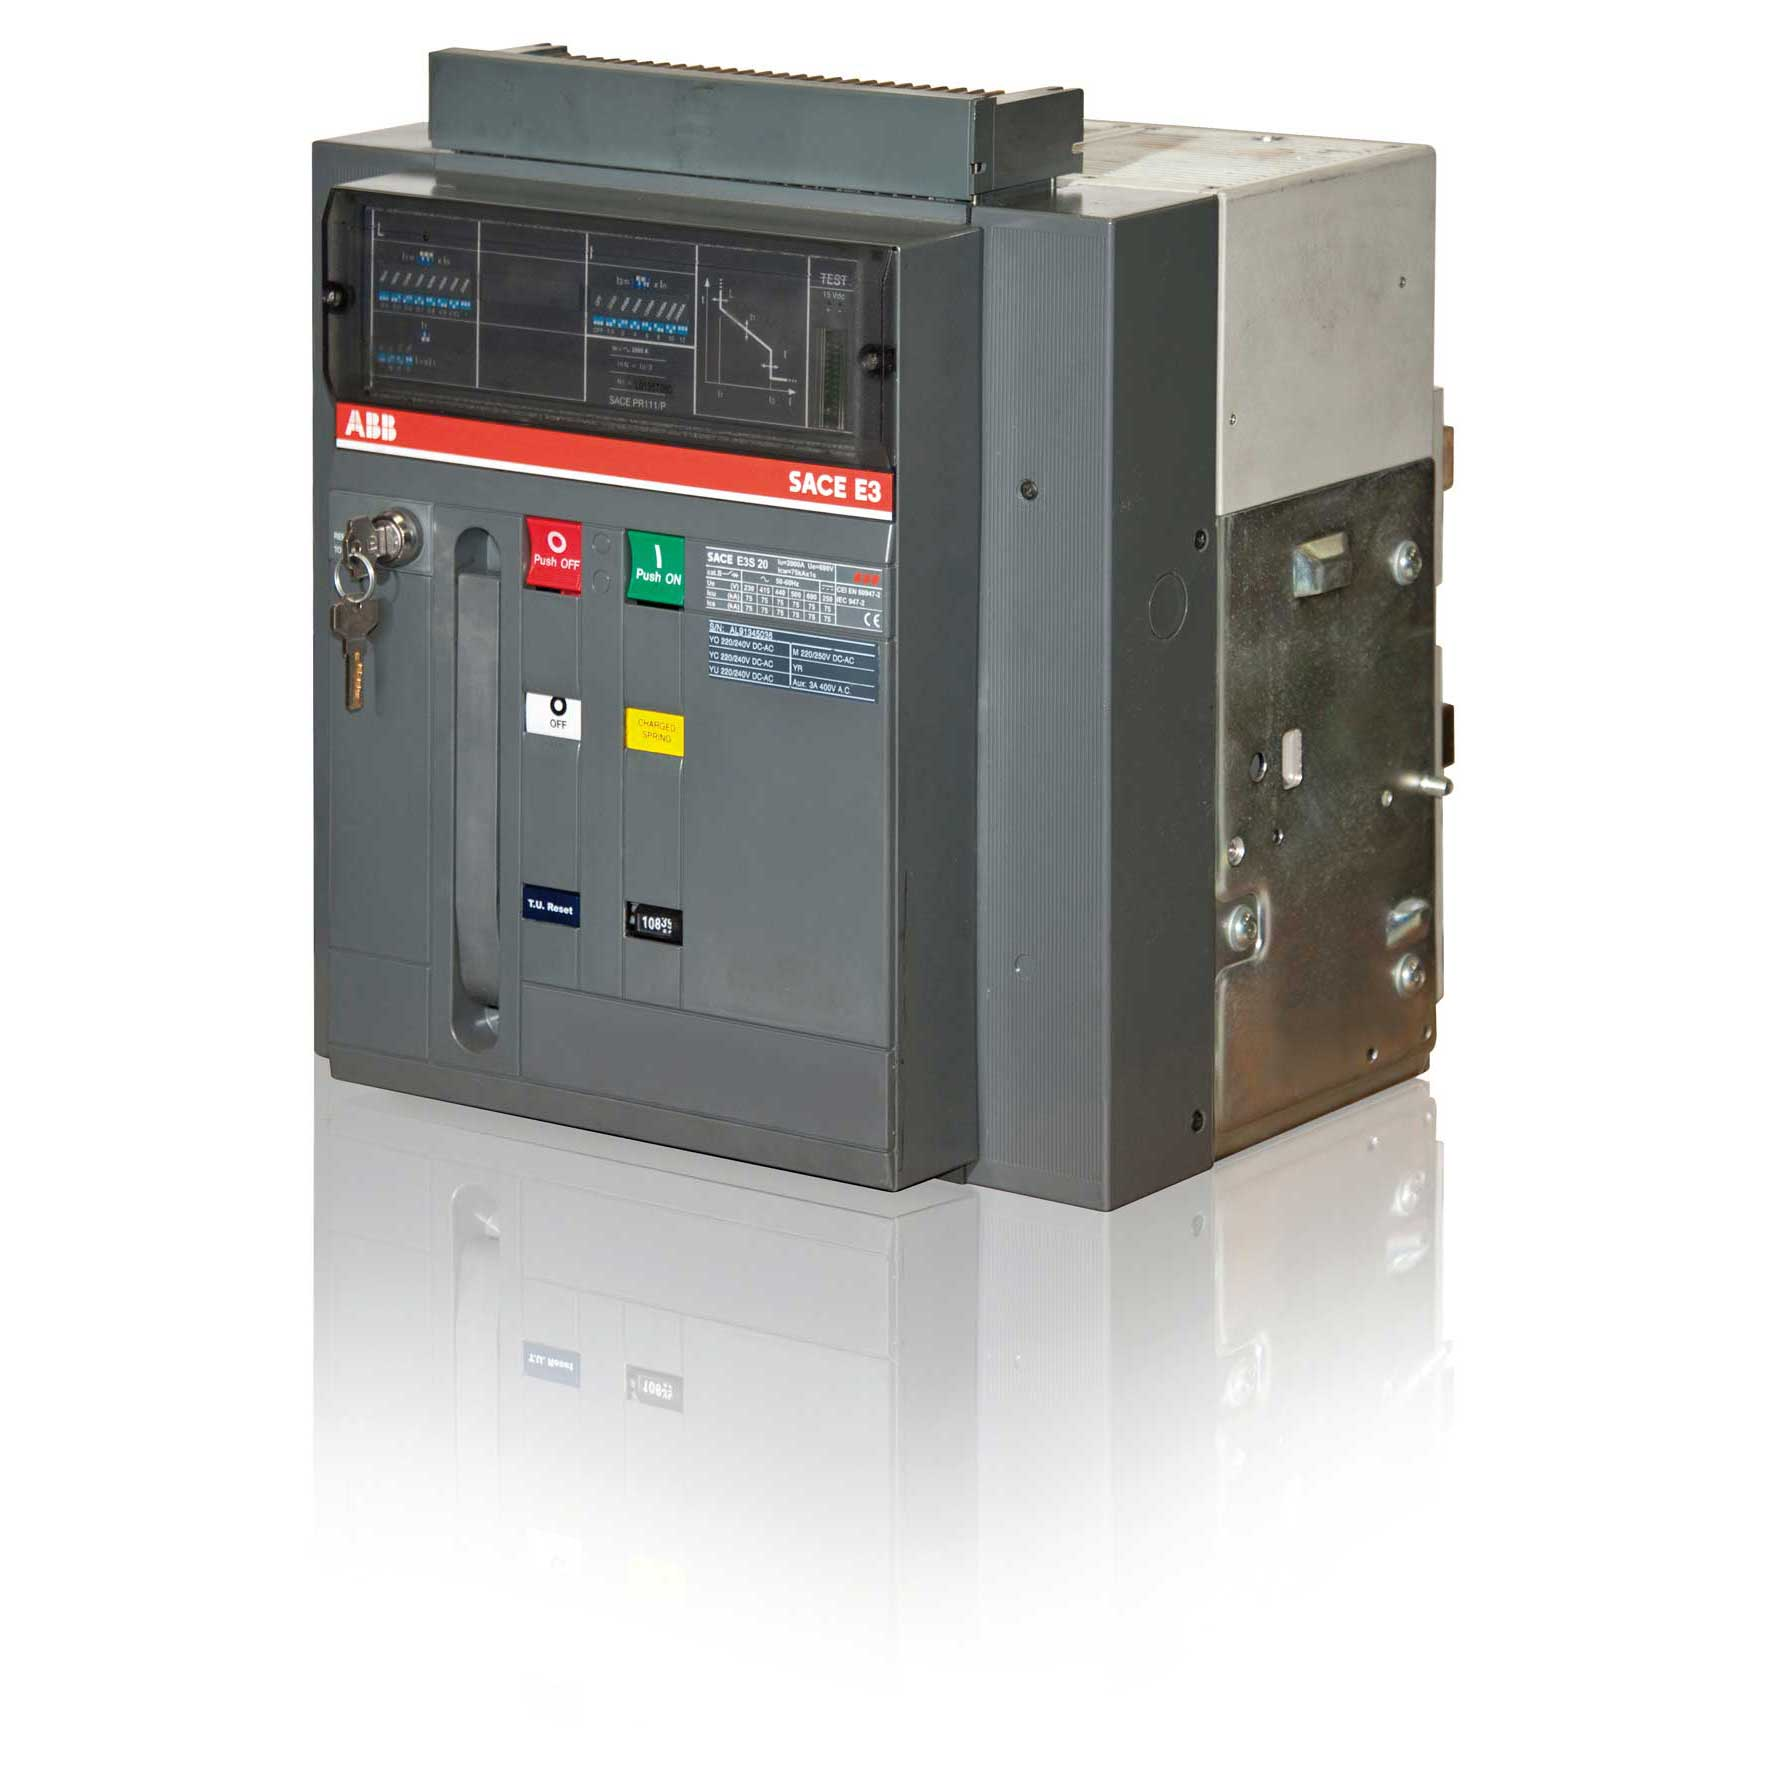 small resolution of acb control wiring diagram abb question about wiring diagram bull abb acb wiring diagram 22 wiring